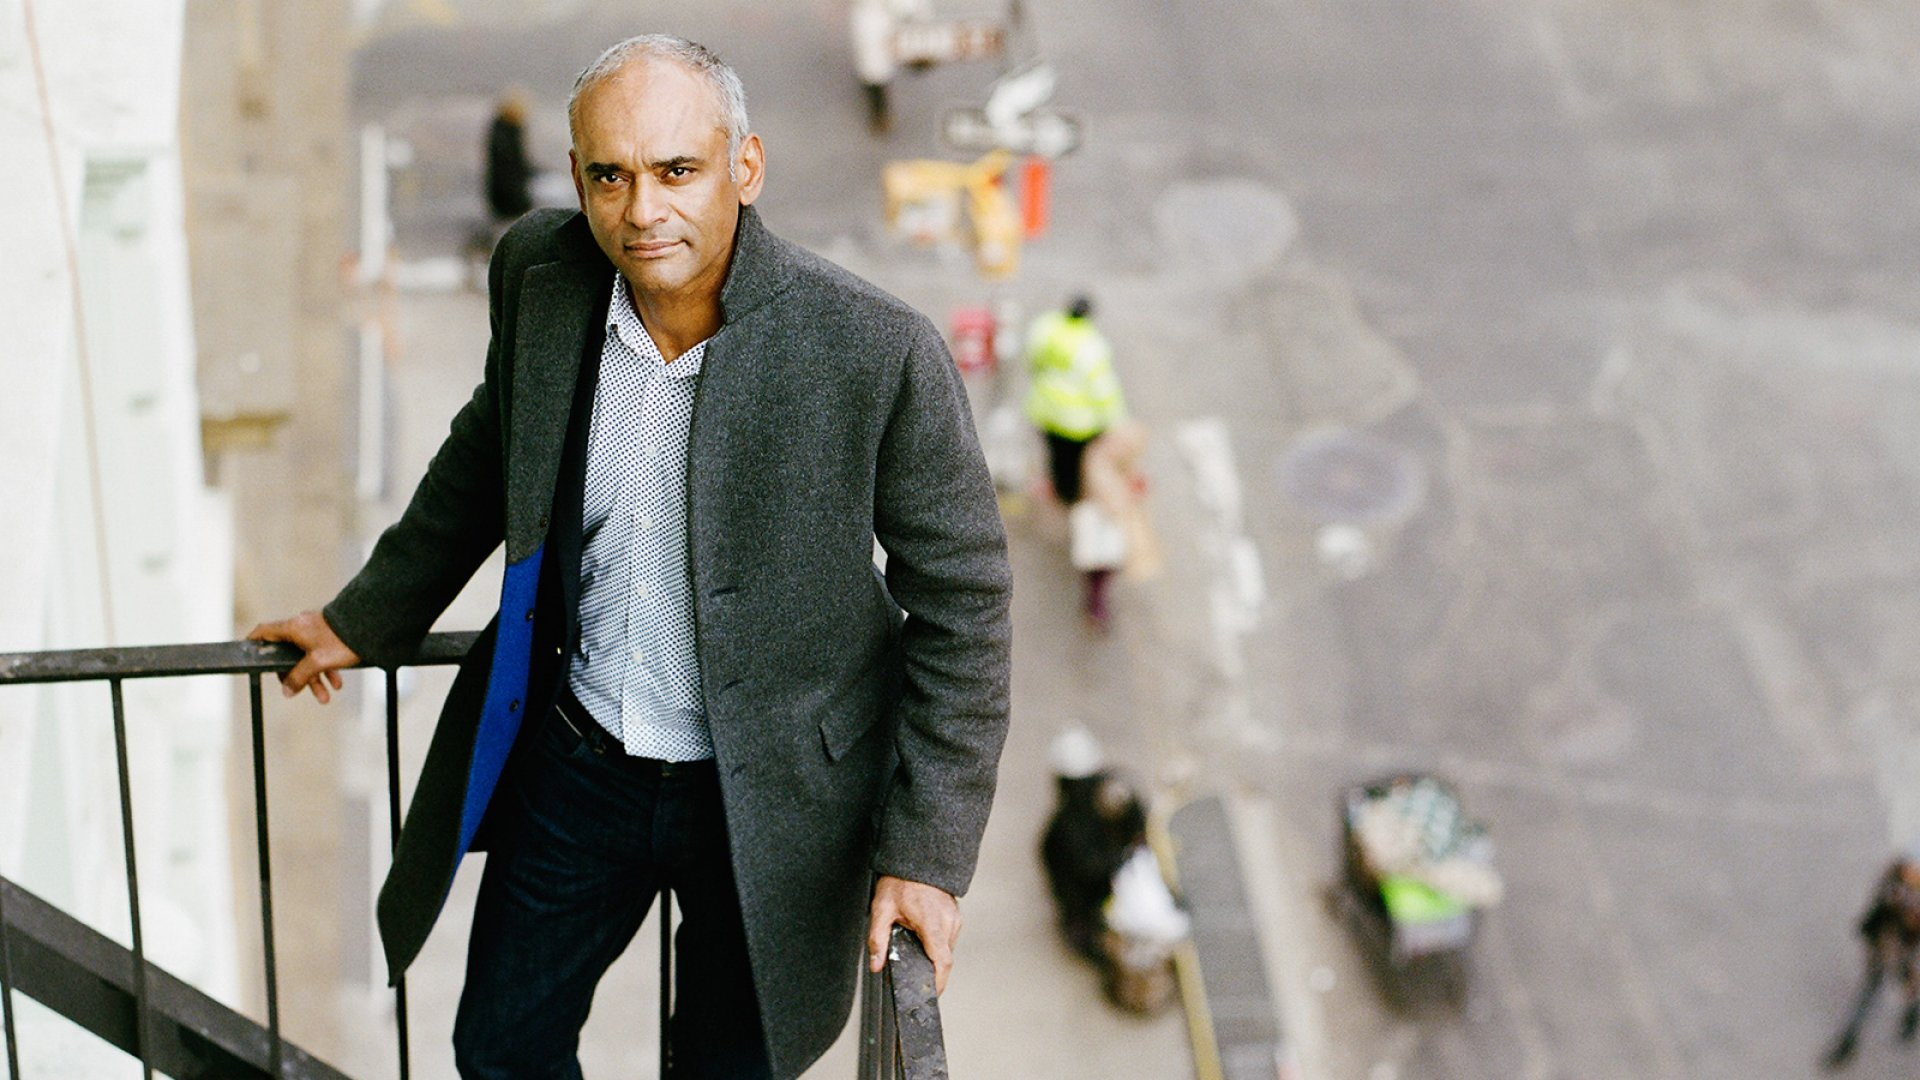 Chet Kanojia Faces a Founder's Worst Fear as Supreme Court Rules Against Aereo